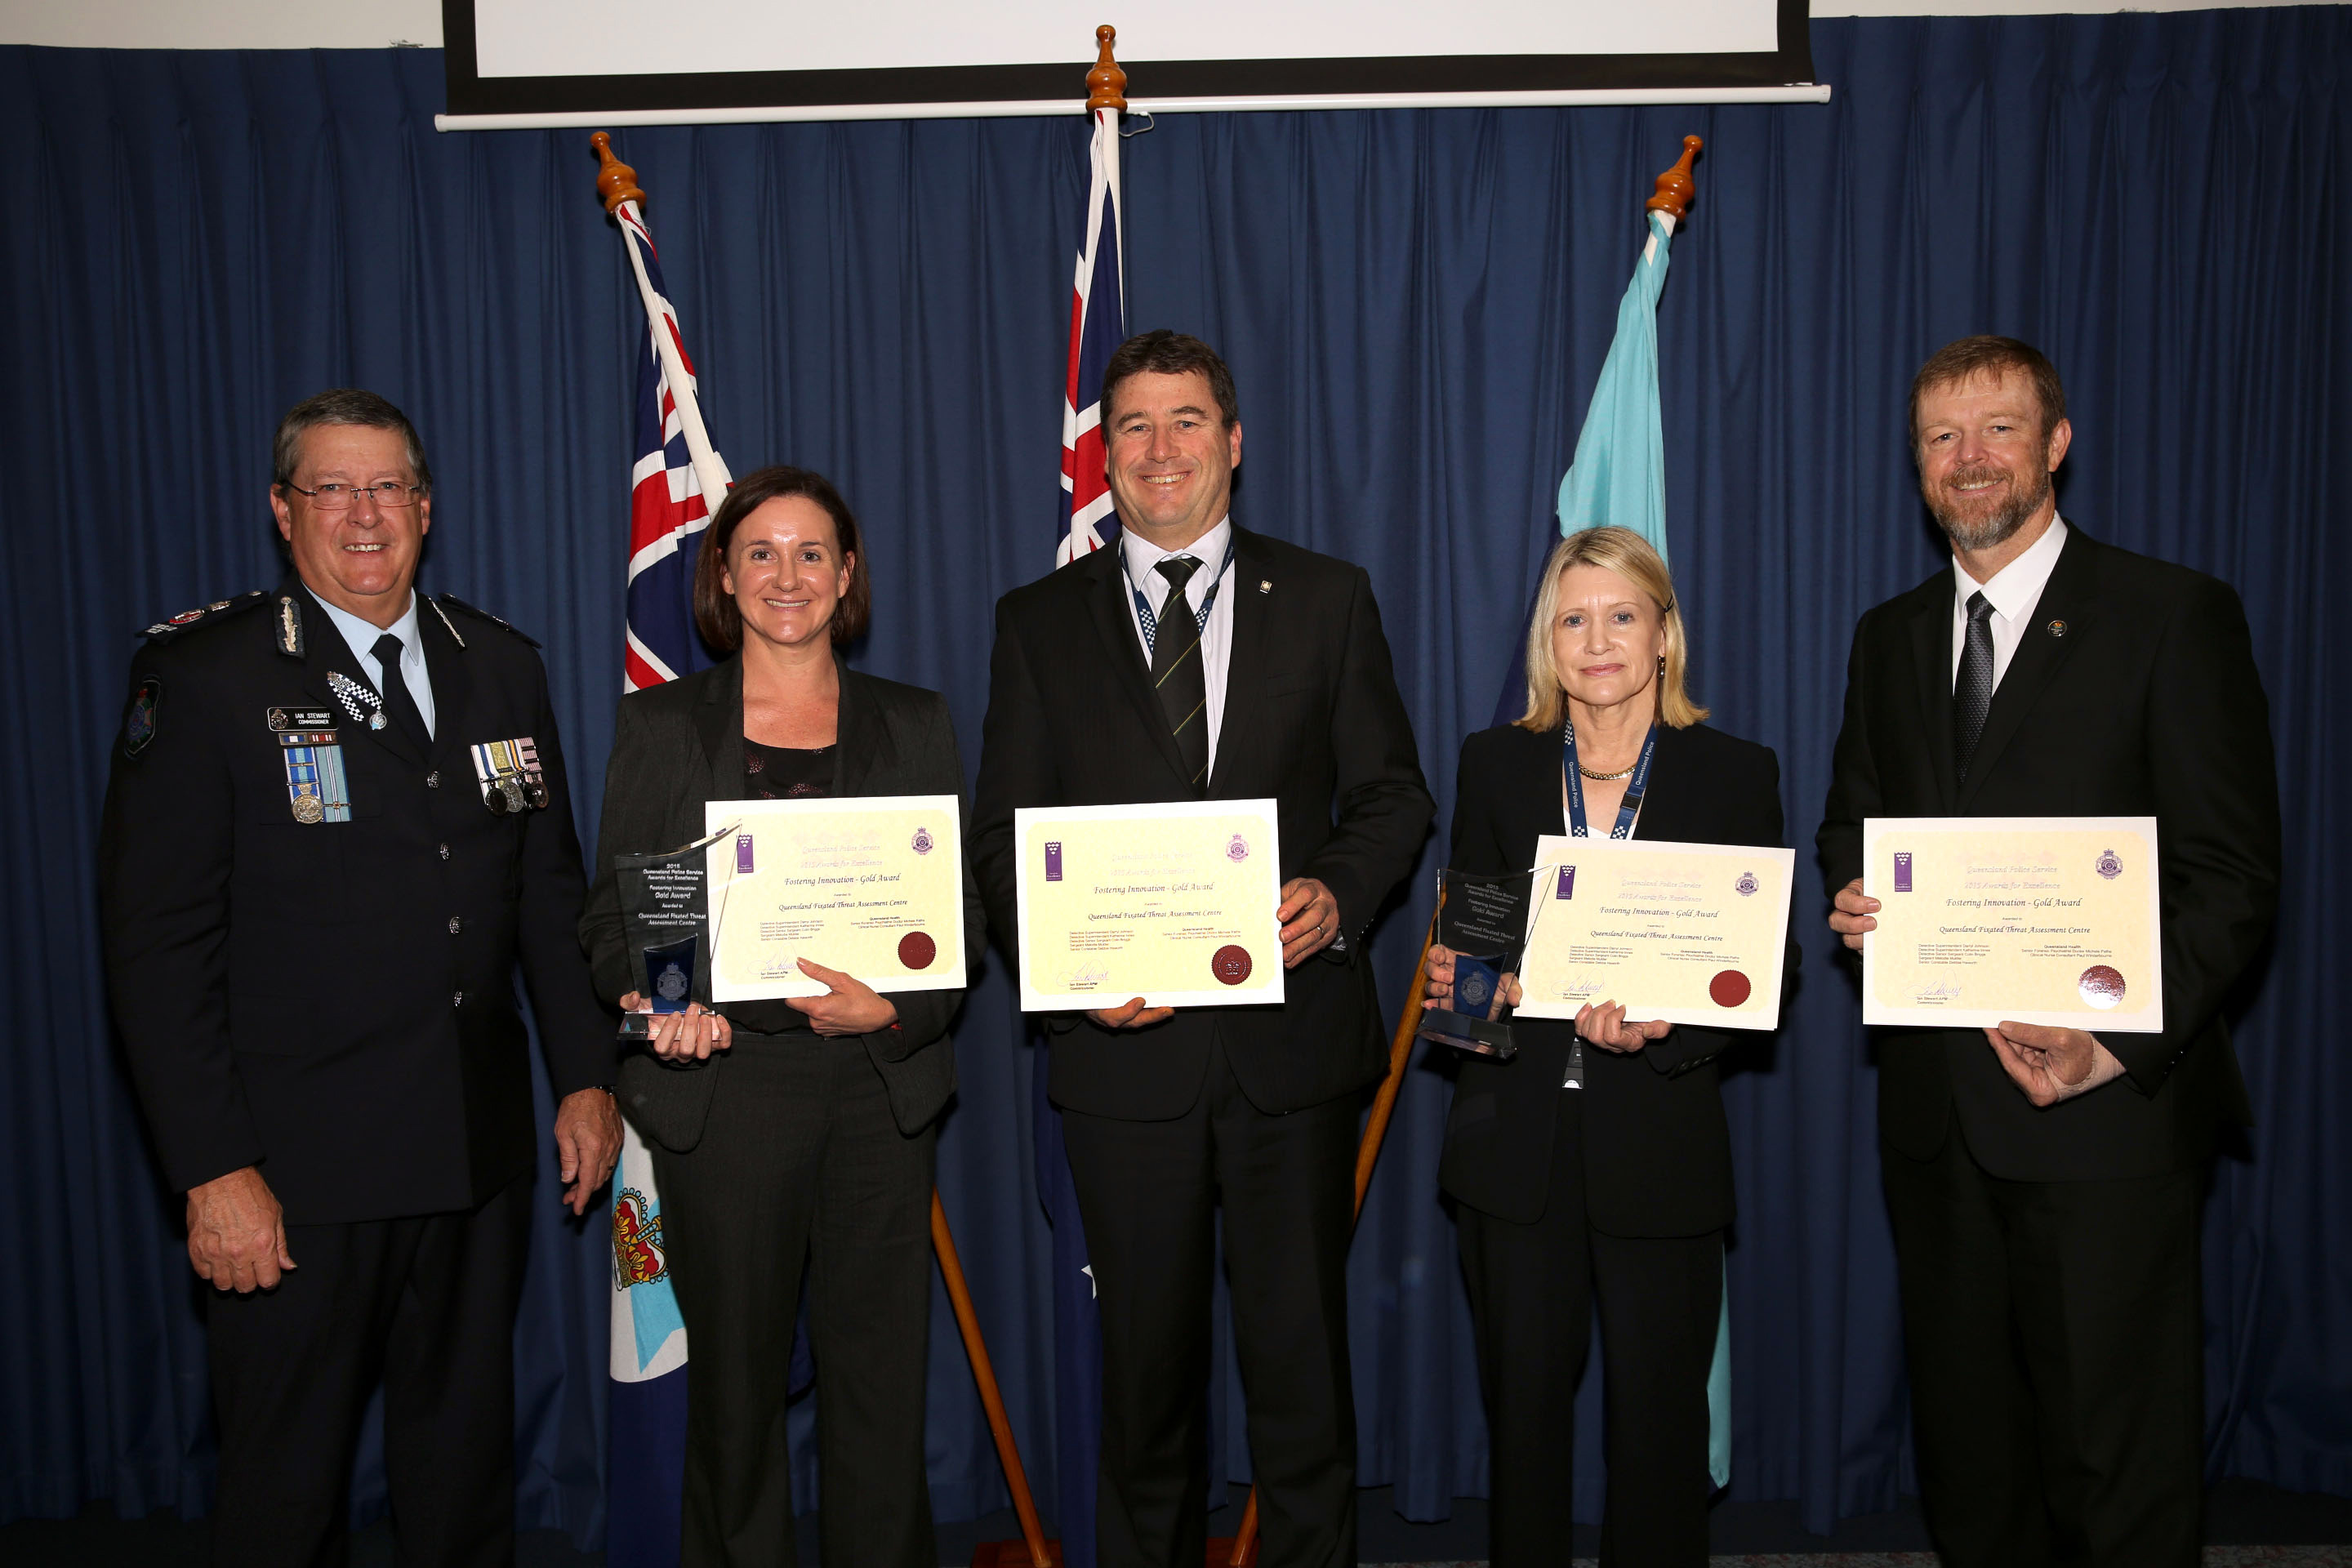 Queensland Fixated Threat Assessment Centre representatives were awarded Gold for the Fostering Innovation categor